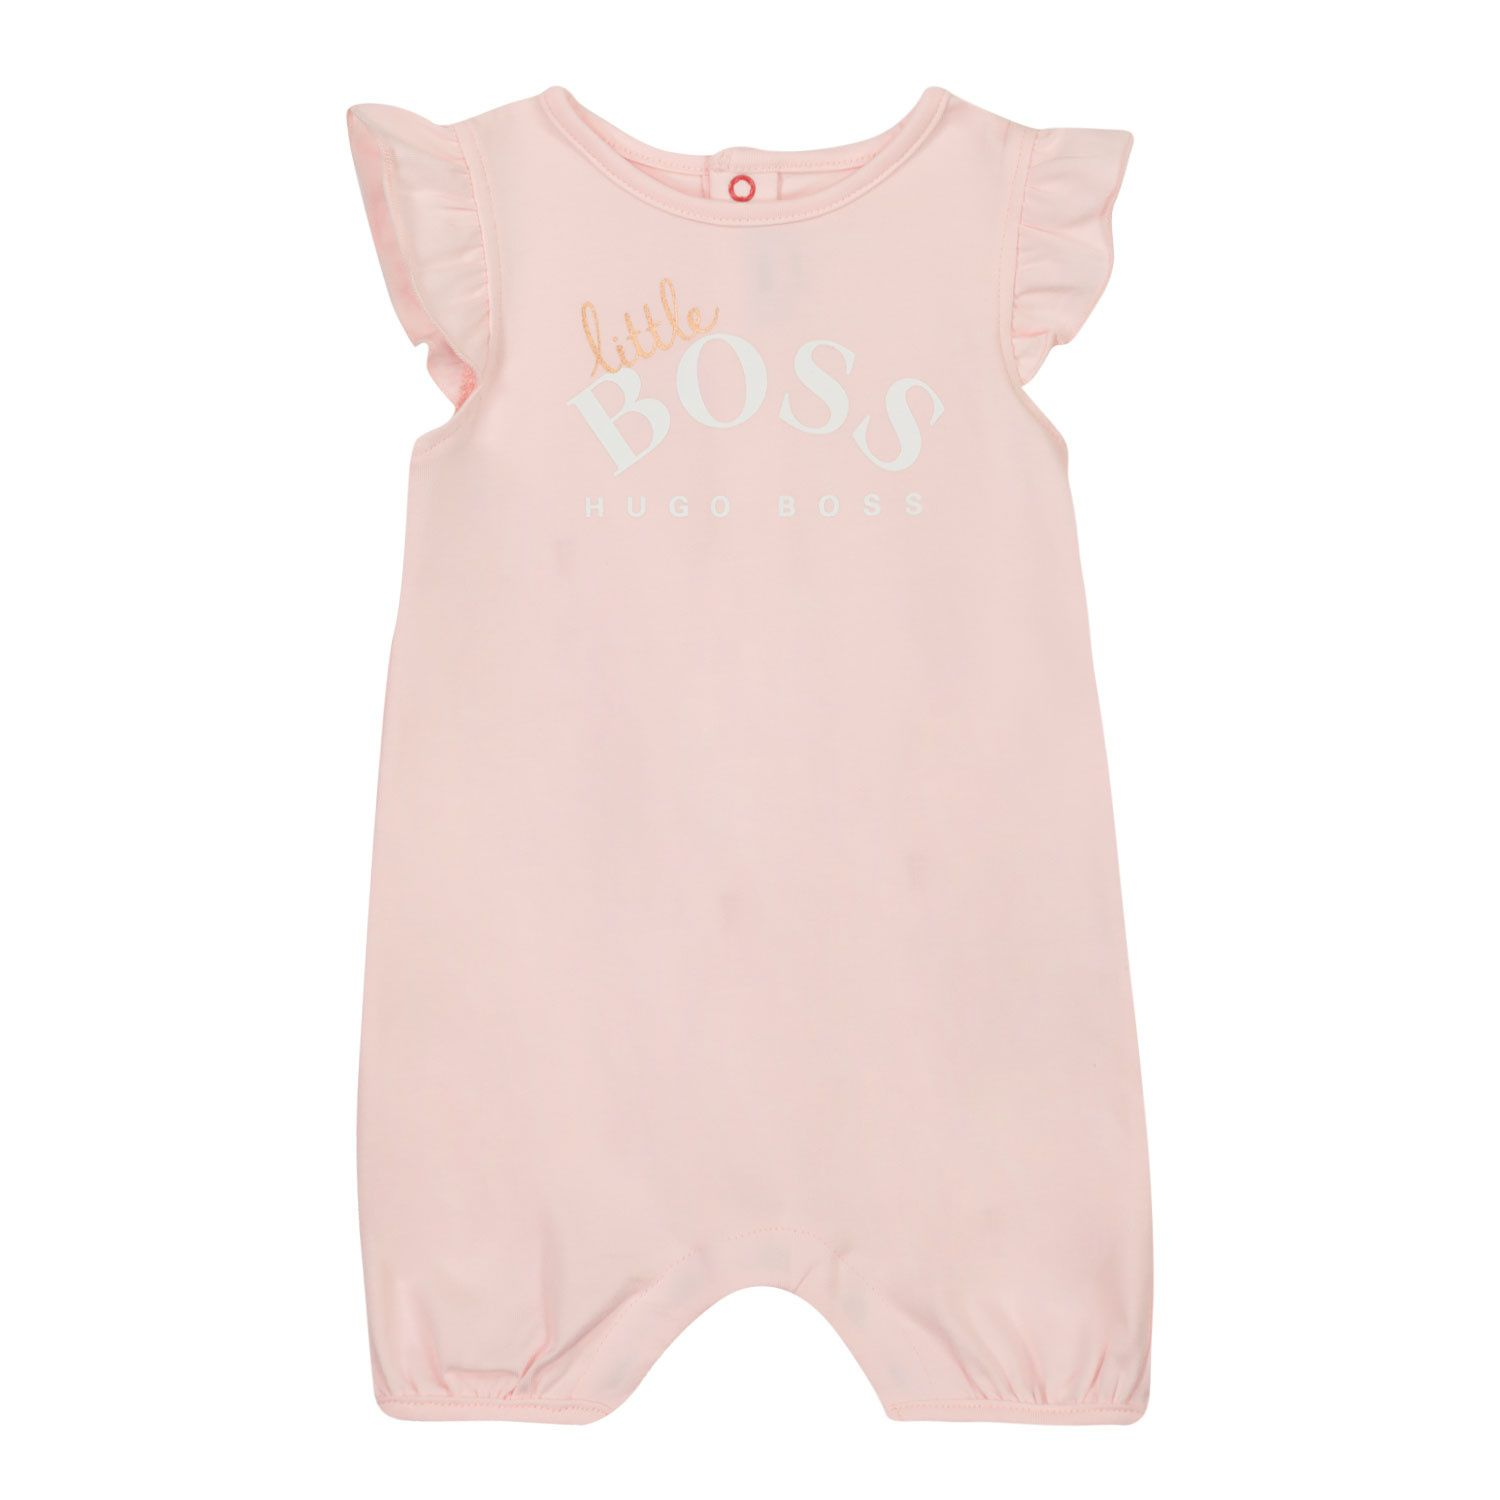 Picture of Boss J94282 baby playsuit light pink